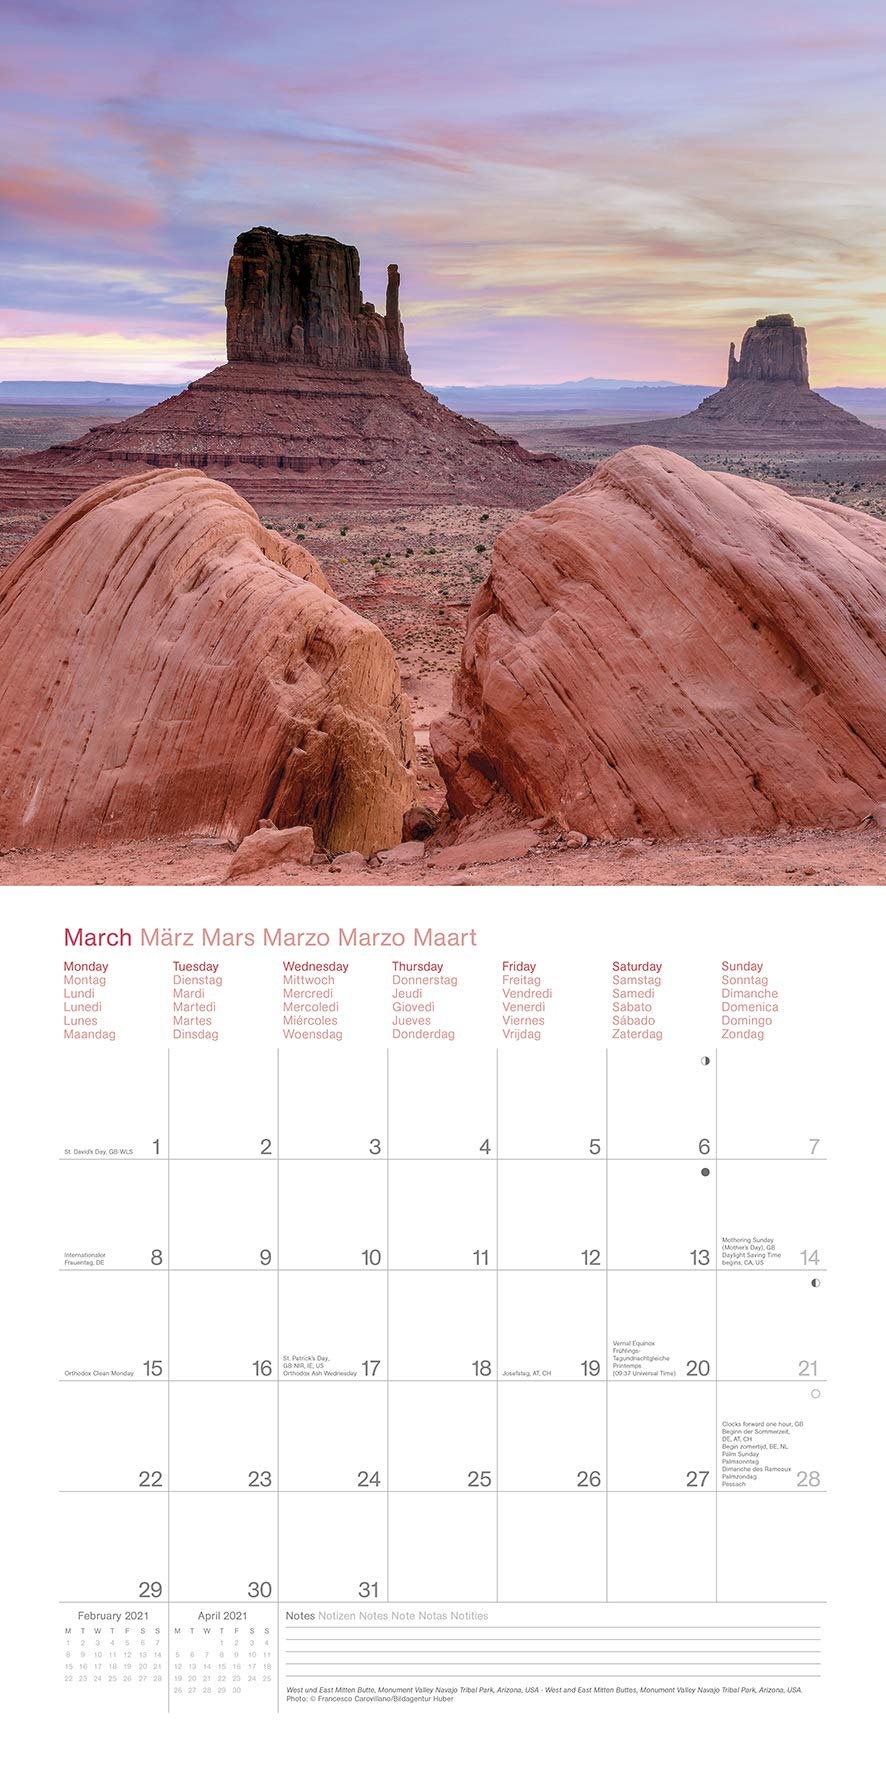 TeNeues_Wonders_of_Nature_calendar_03_2021